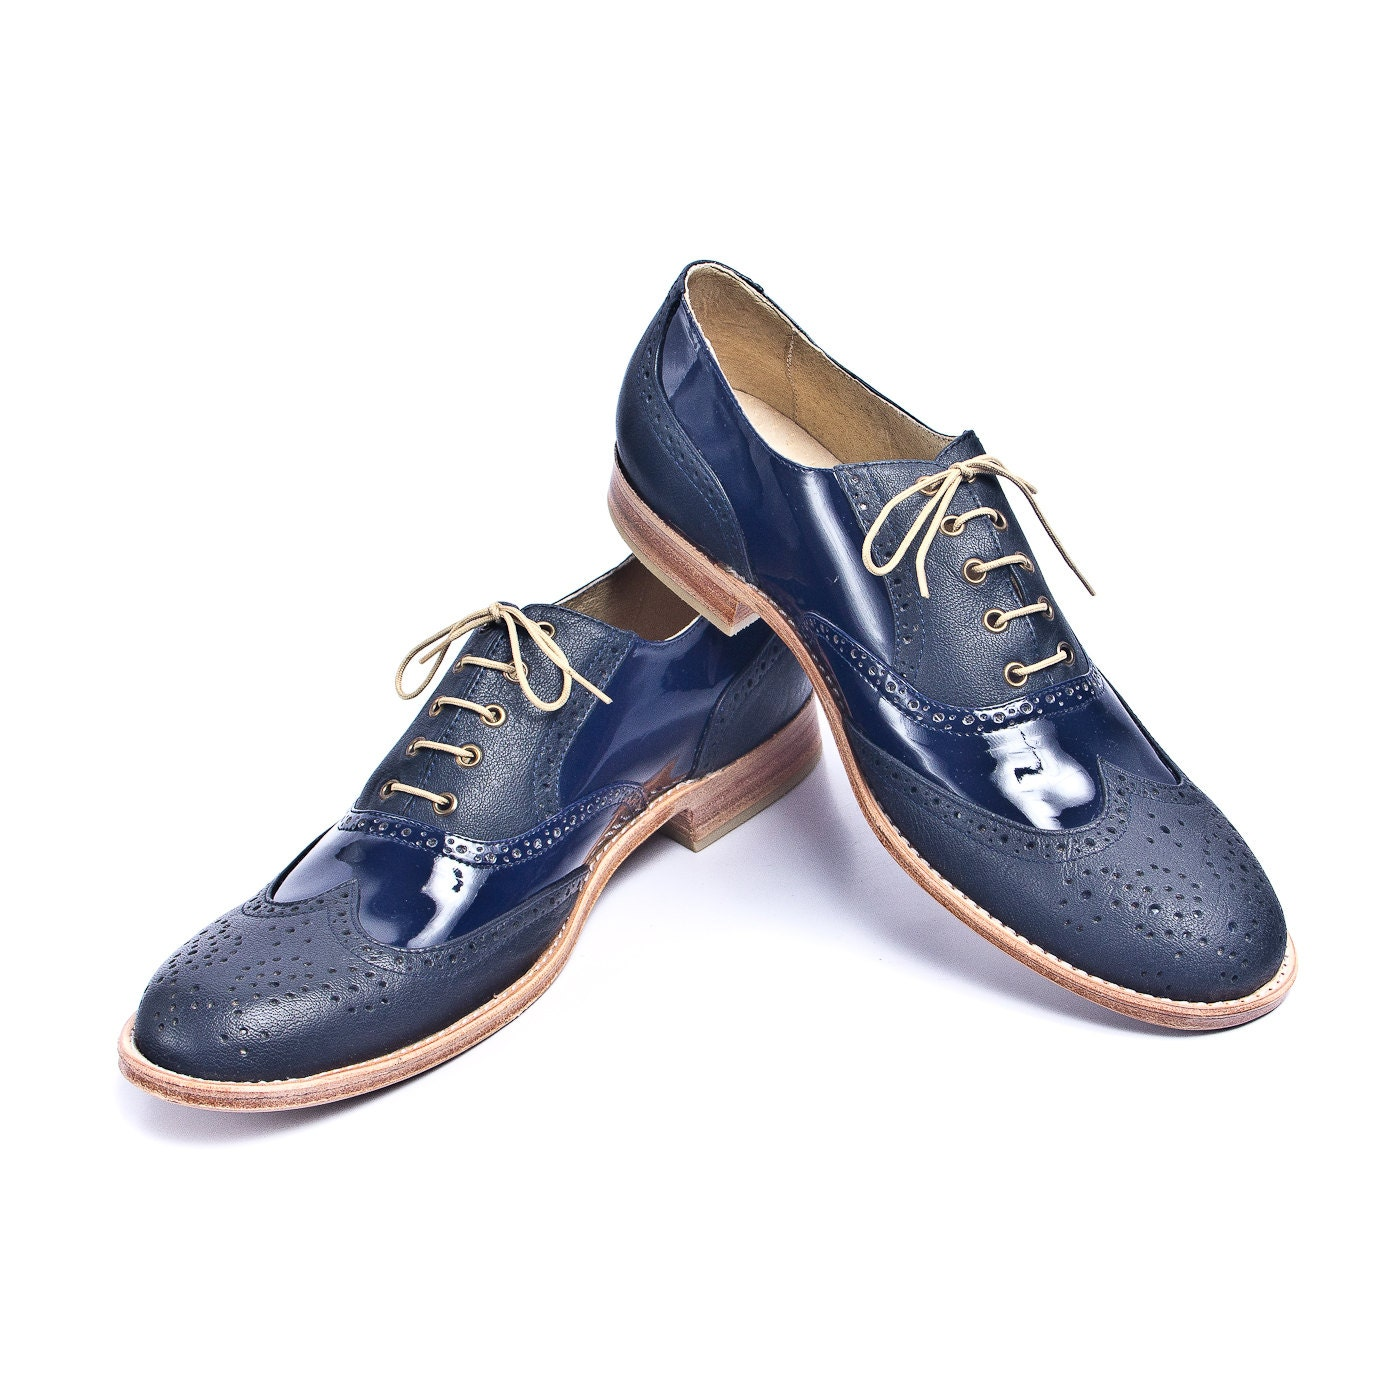 navy blue leather and patent leather oxford shoes by